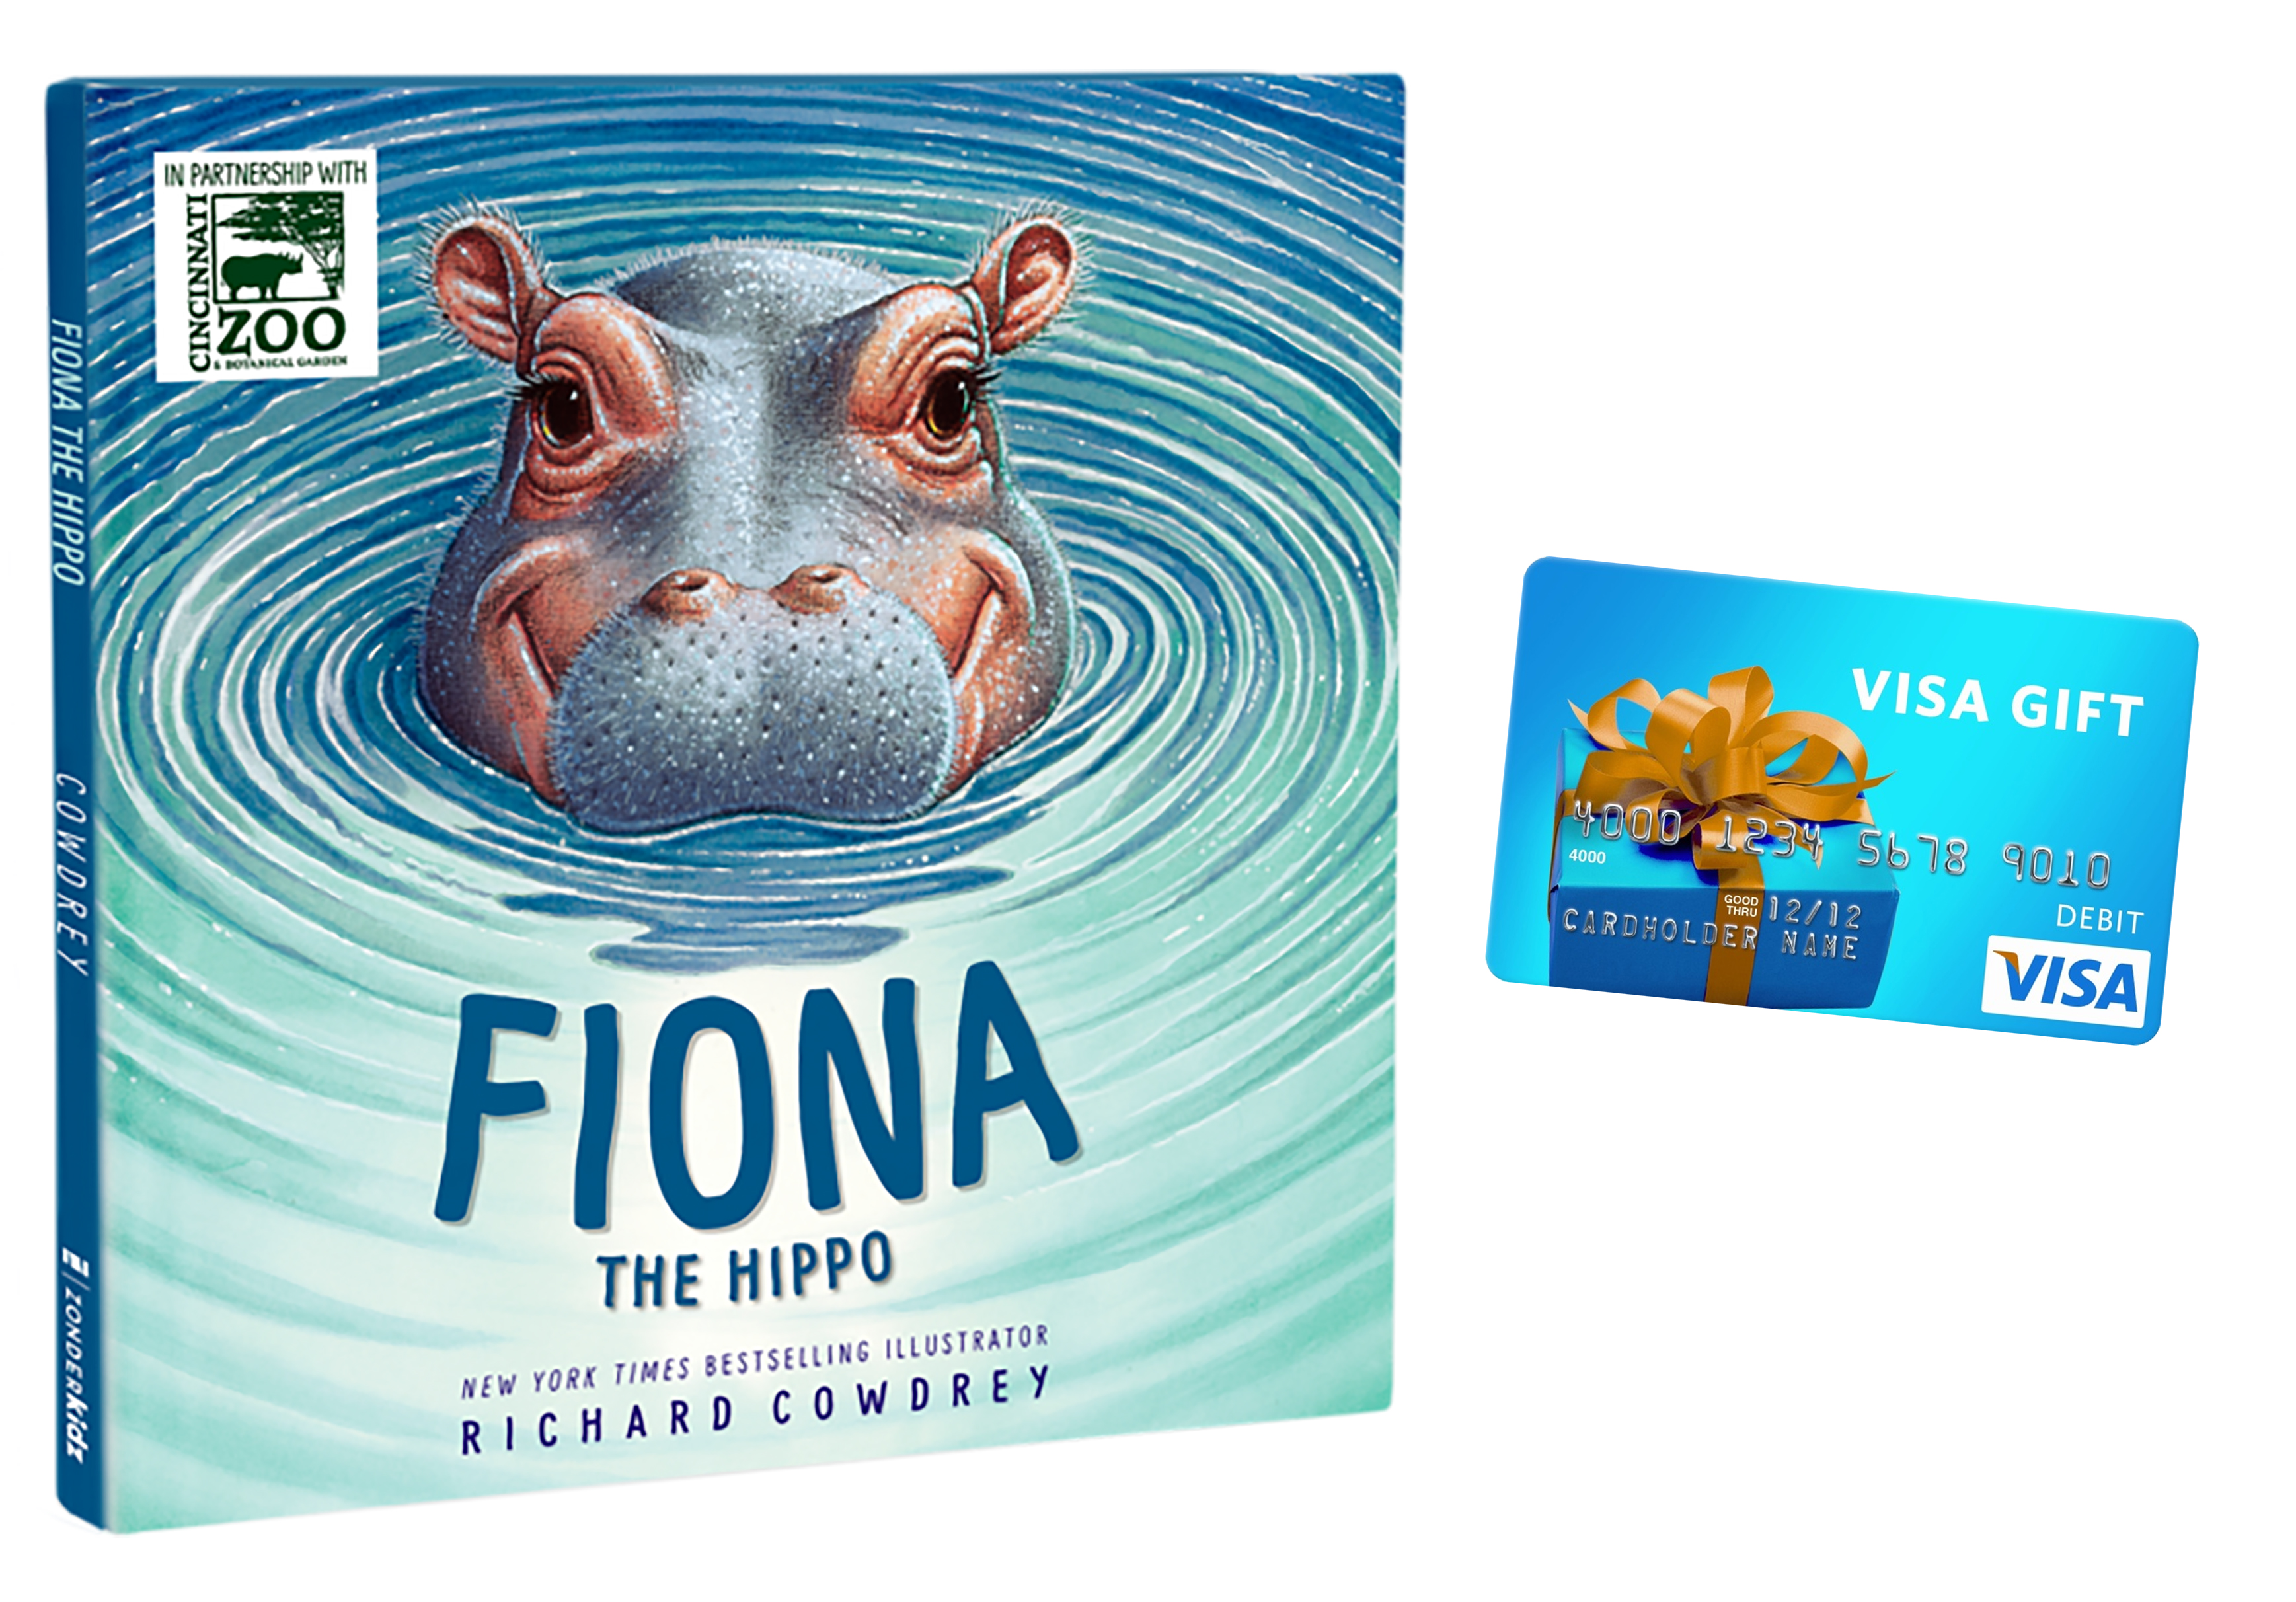 The story of Fiona the Hippo, and the beautiful illustrations in the book are sure to become a fast favorite in your home, as it has in mine.